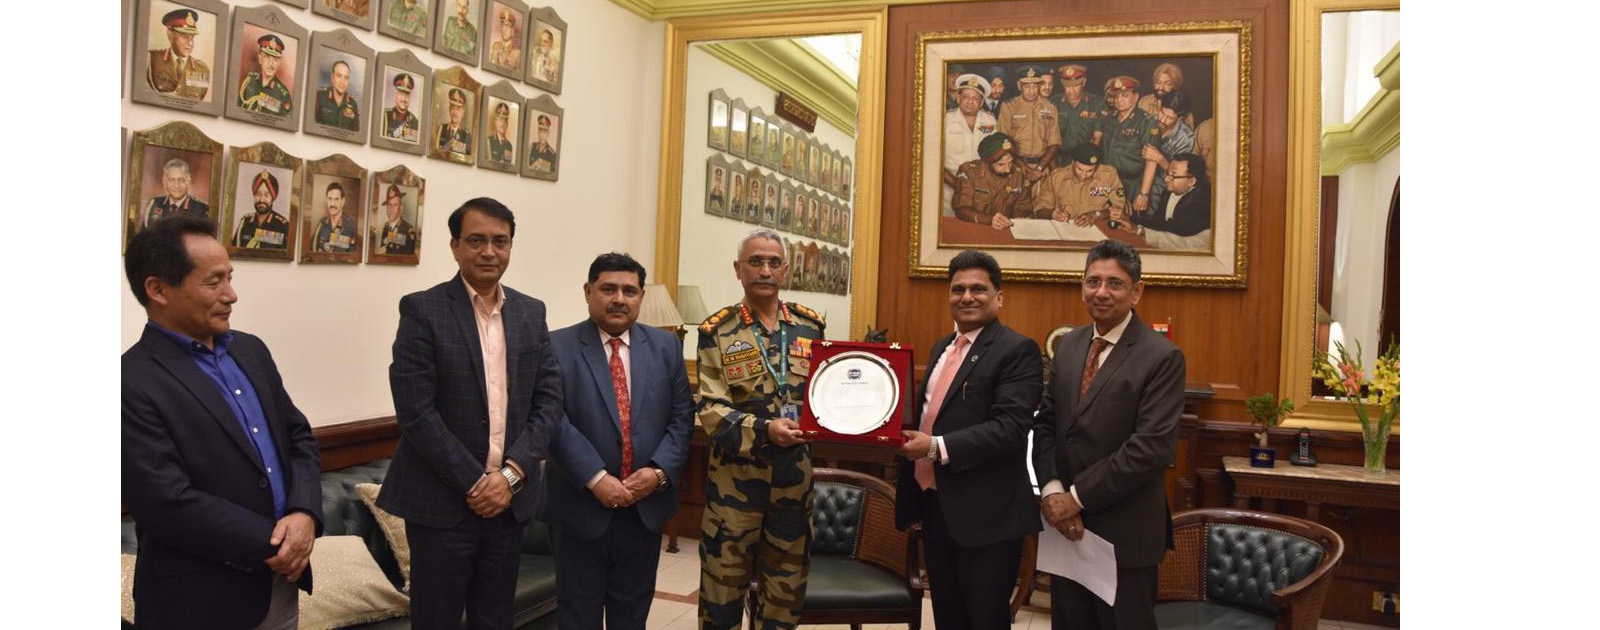 Call on Meeting with General Manoj Mukund Naravane PVSM, AVSM, SM, VSM, ADC, Chief of the Army Staff (COAS), Indian Army